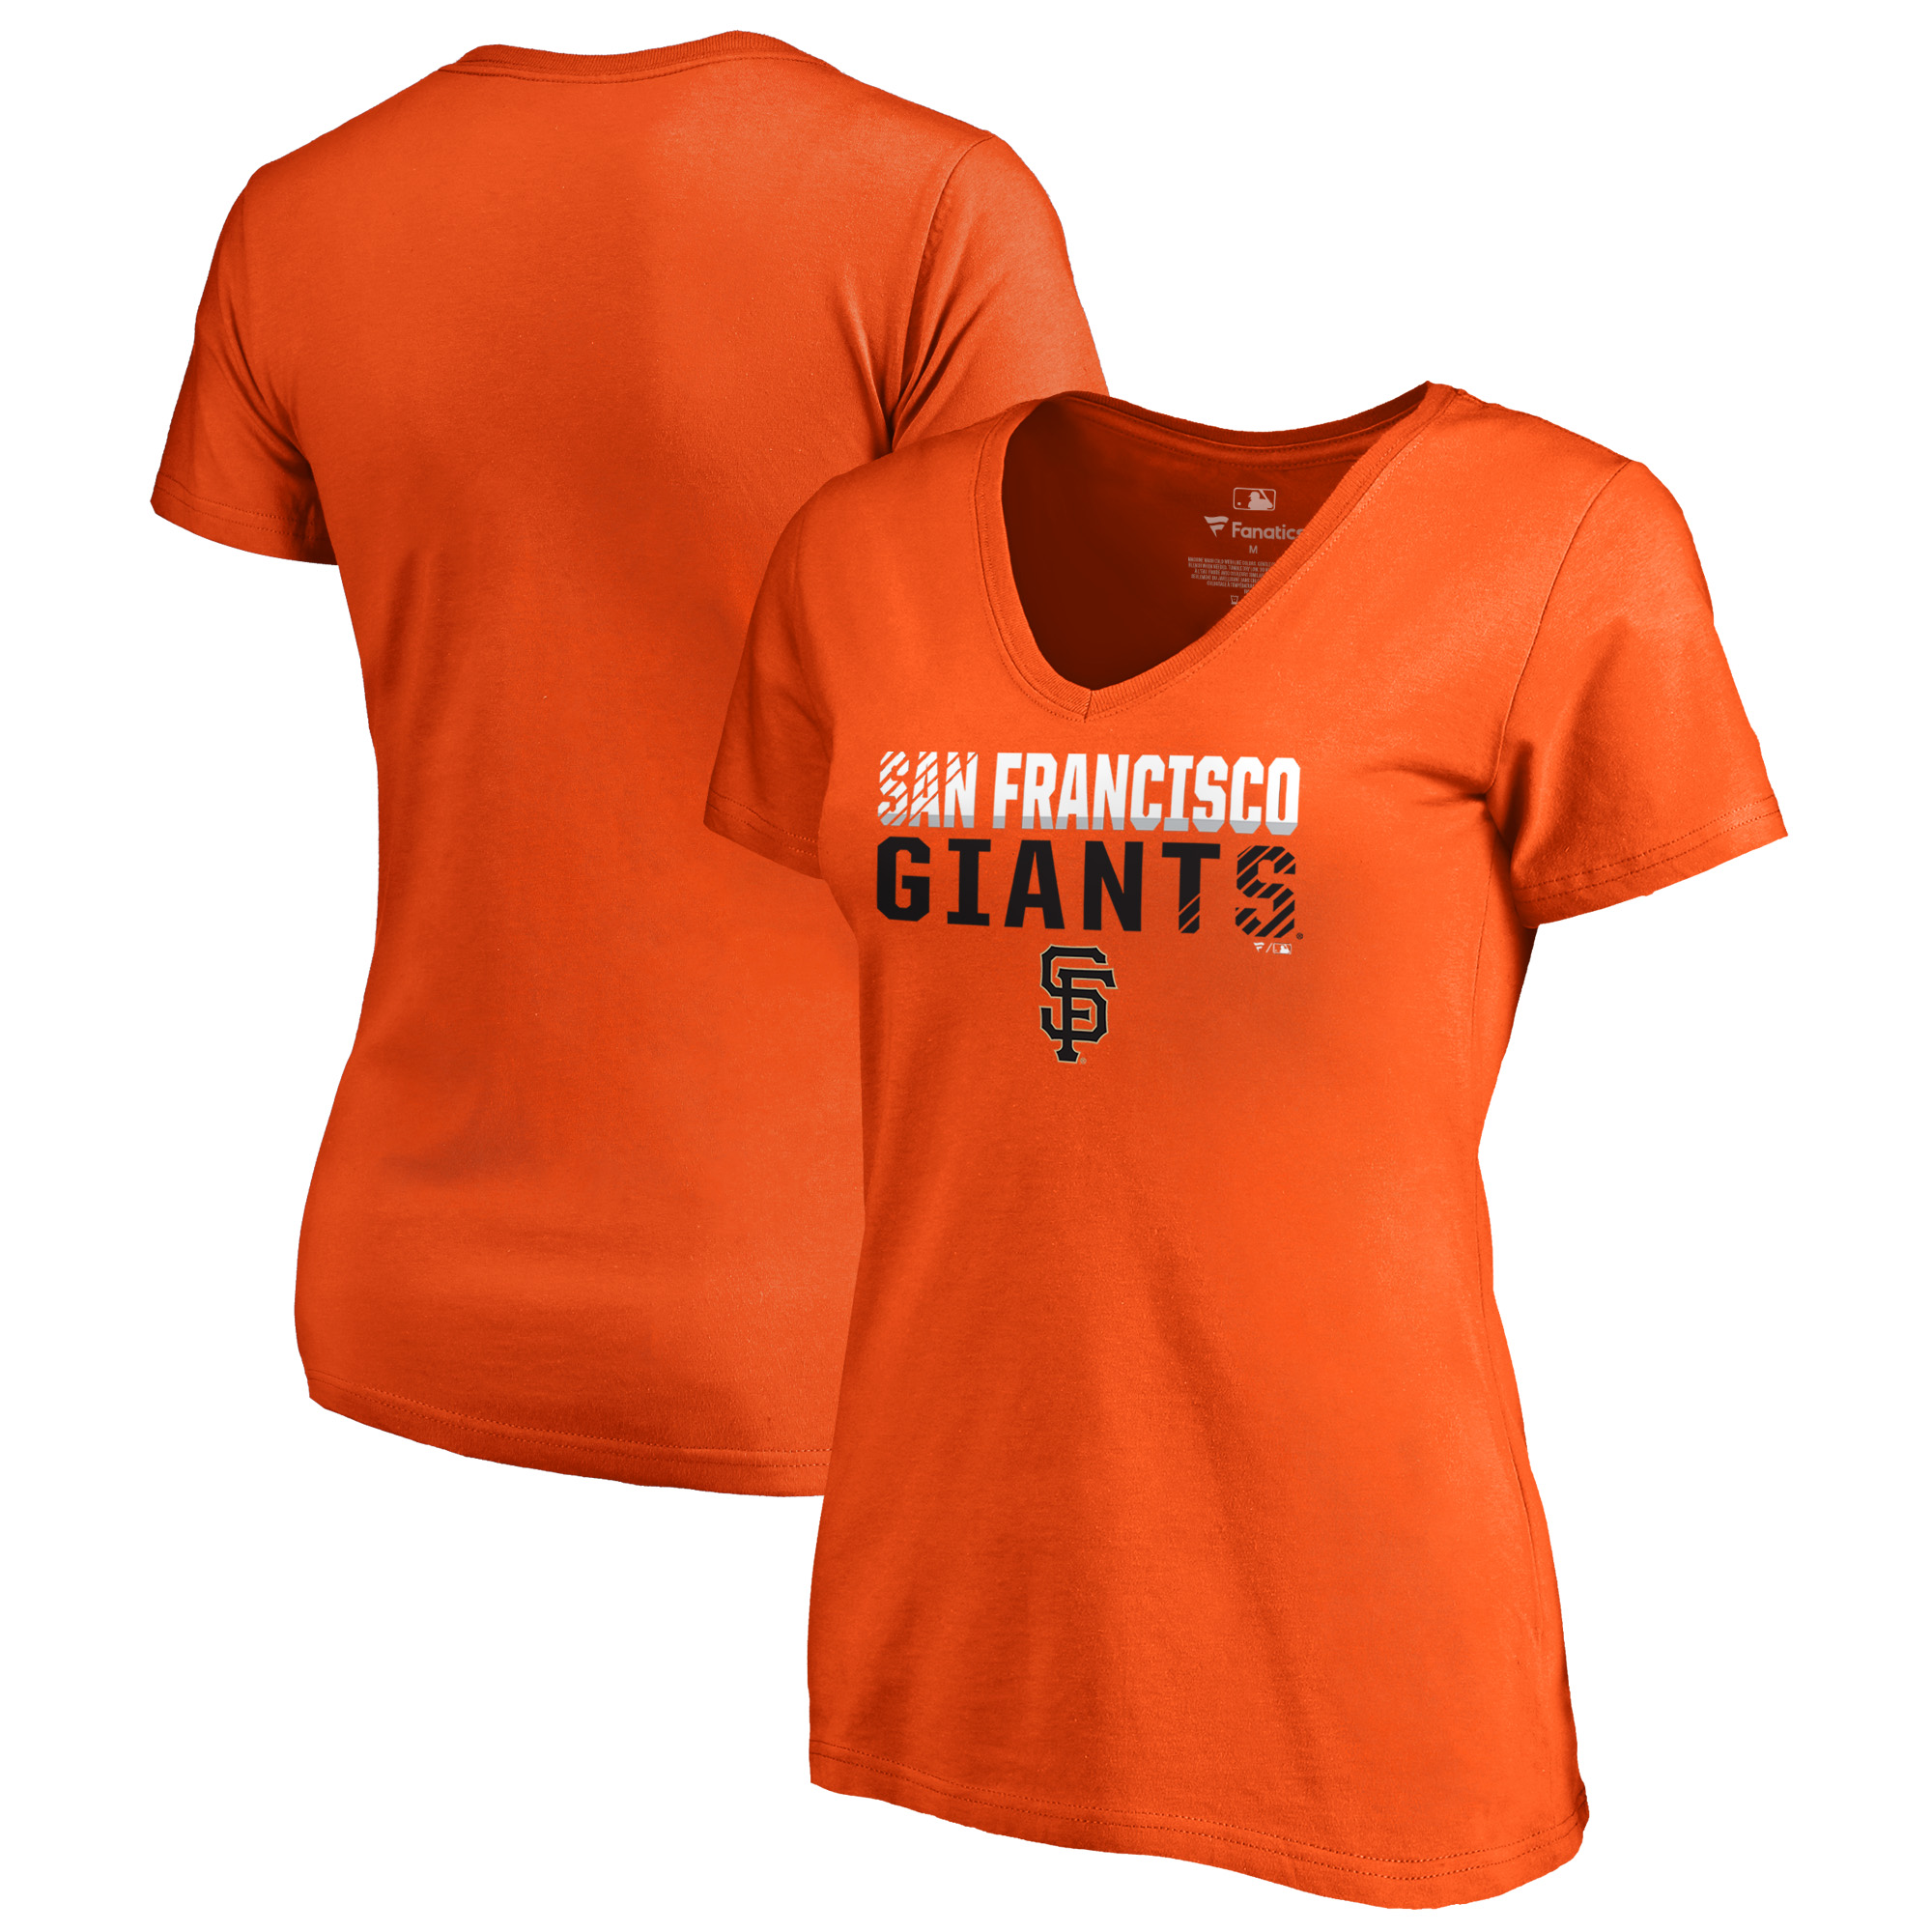 San Francisco Giants Fanatics Branded Women's Fade Out Plus Size V-Neck T-Shirt - Orange